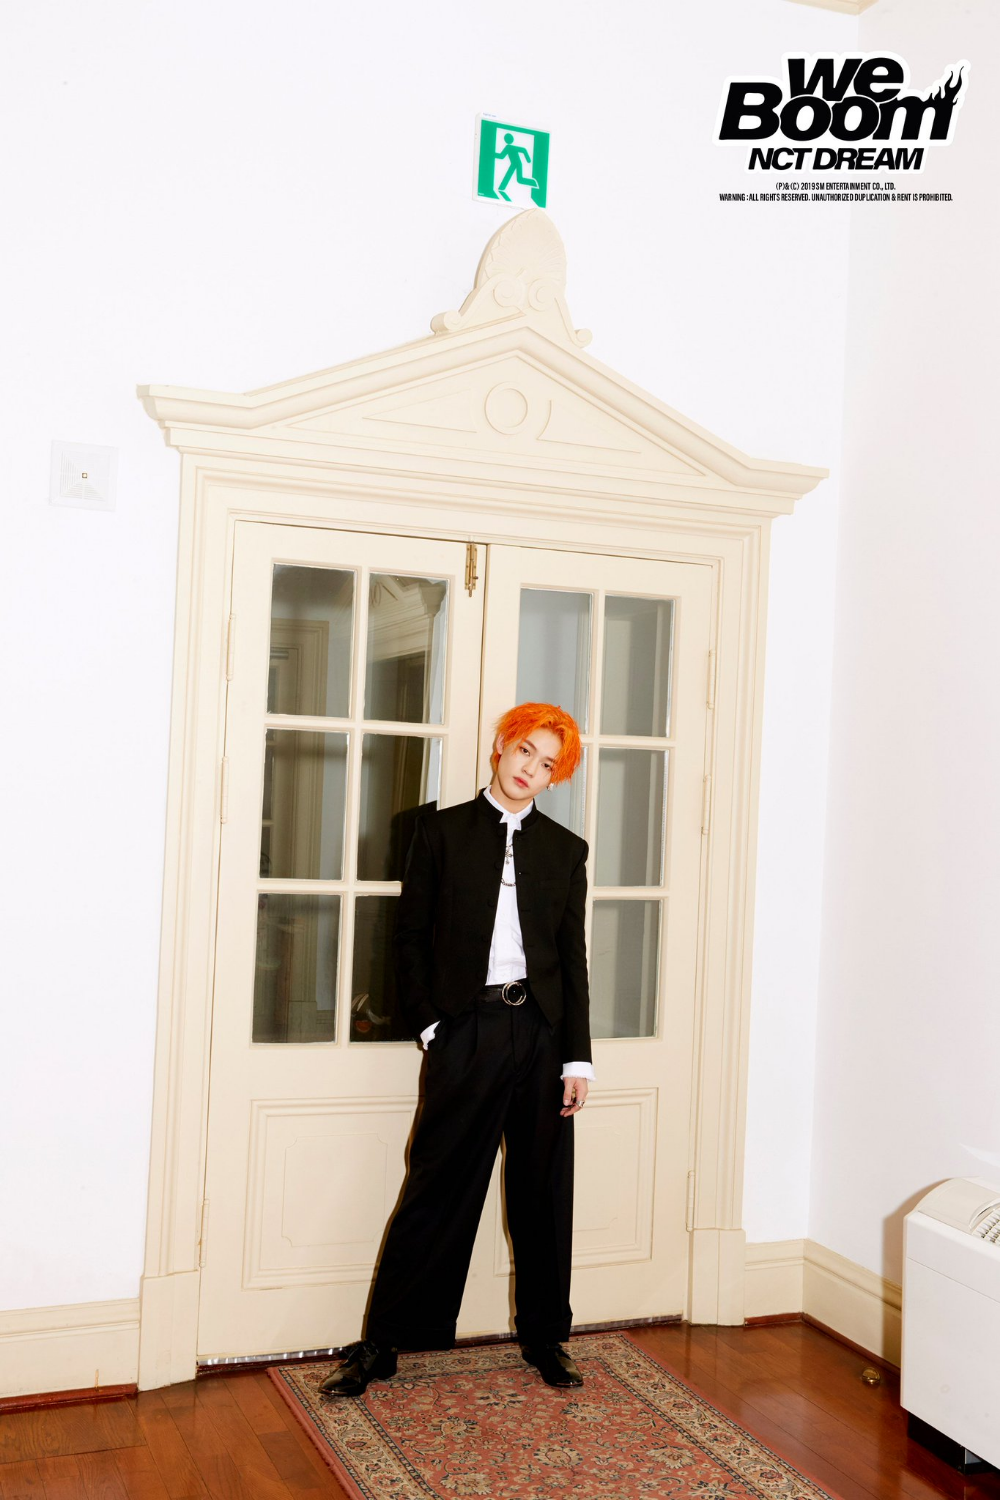 NCT DREAM on in 2020 Nct dream chenle, Nct dream, Nct chenle